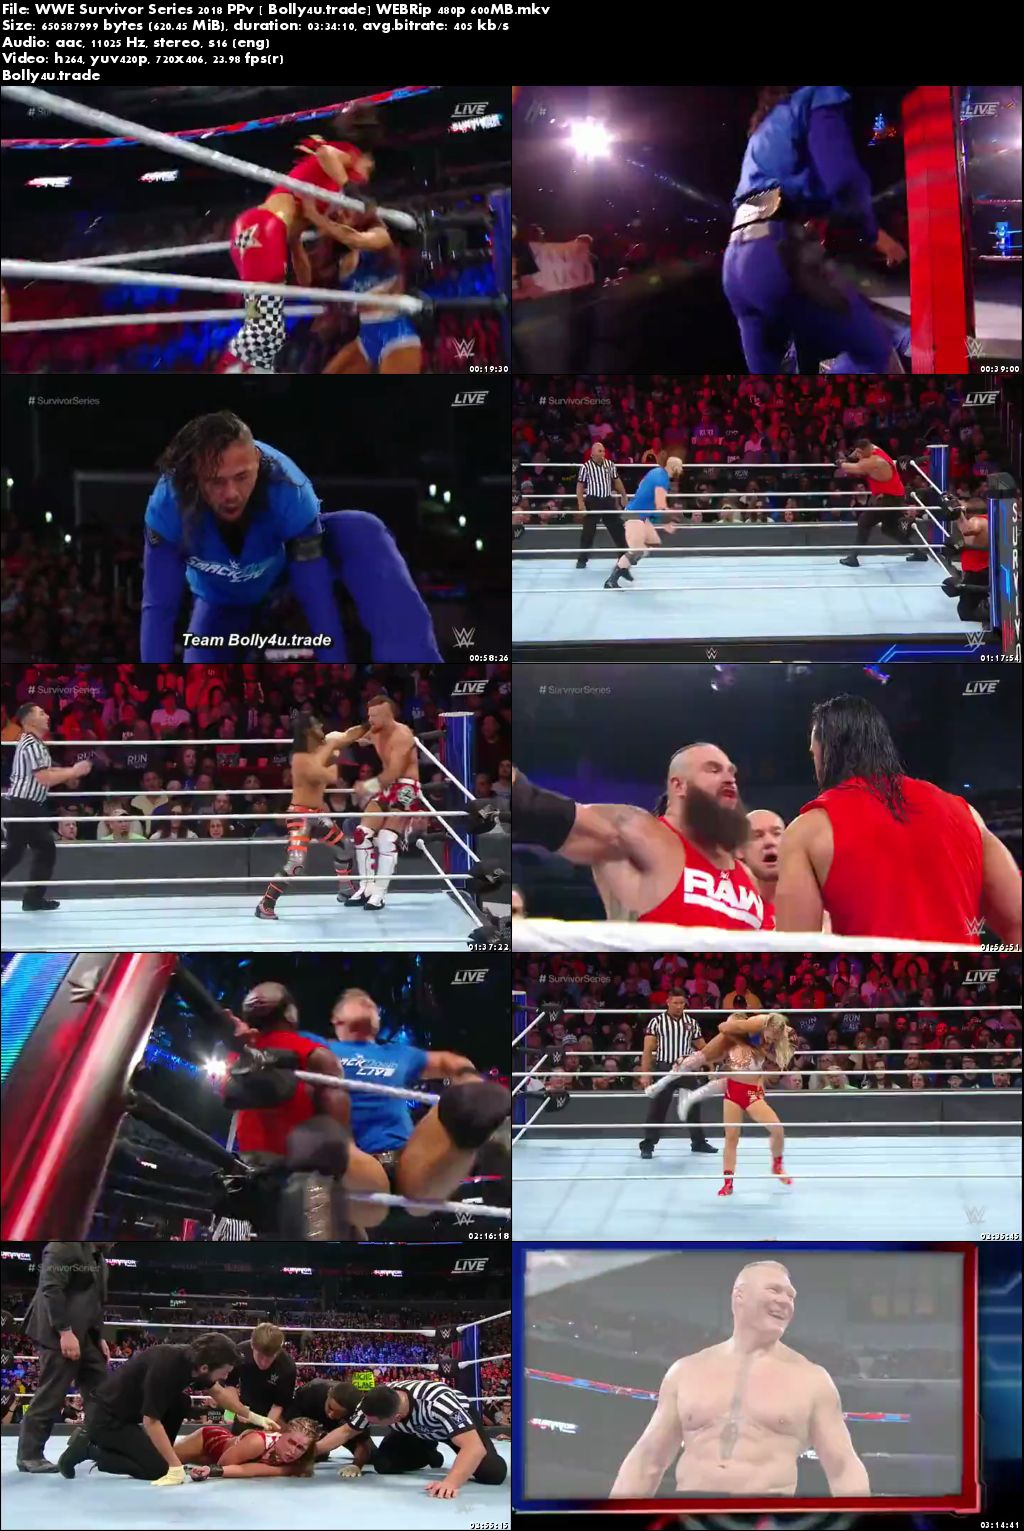 WWE Survivor Series 2018 WEBRip 600MB PPV 480p Download